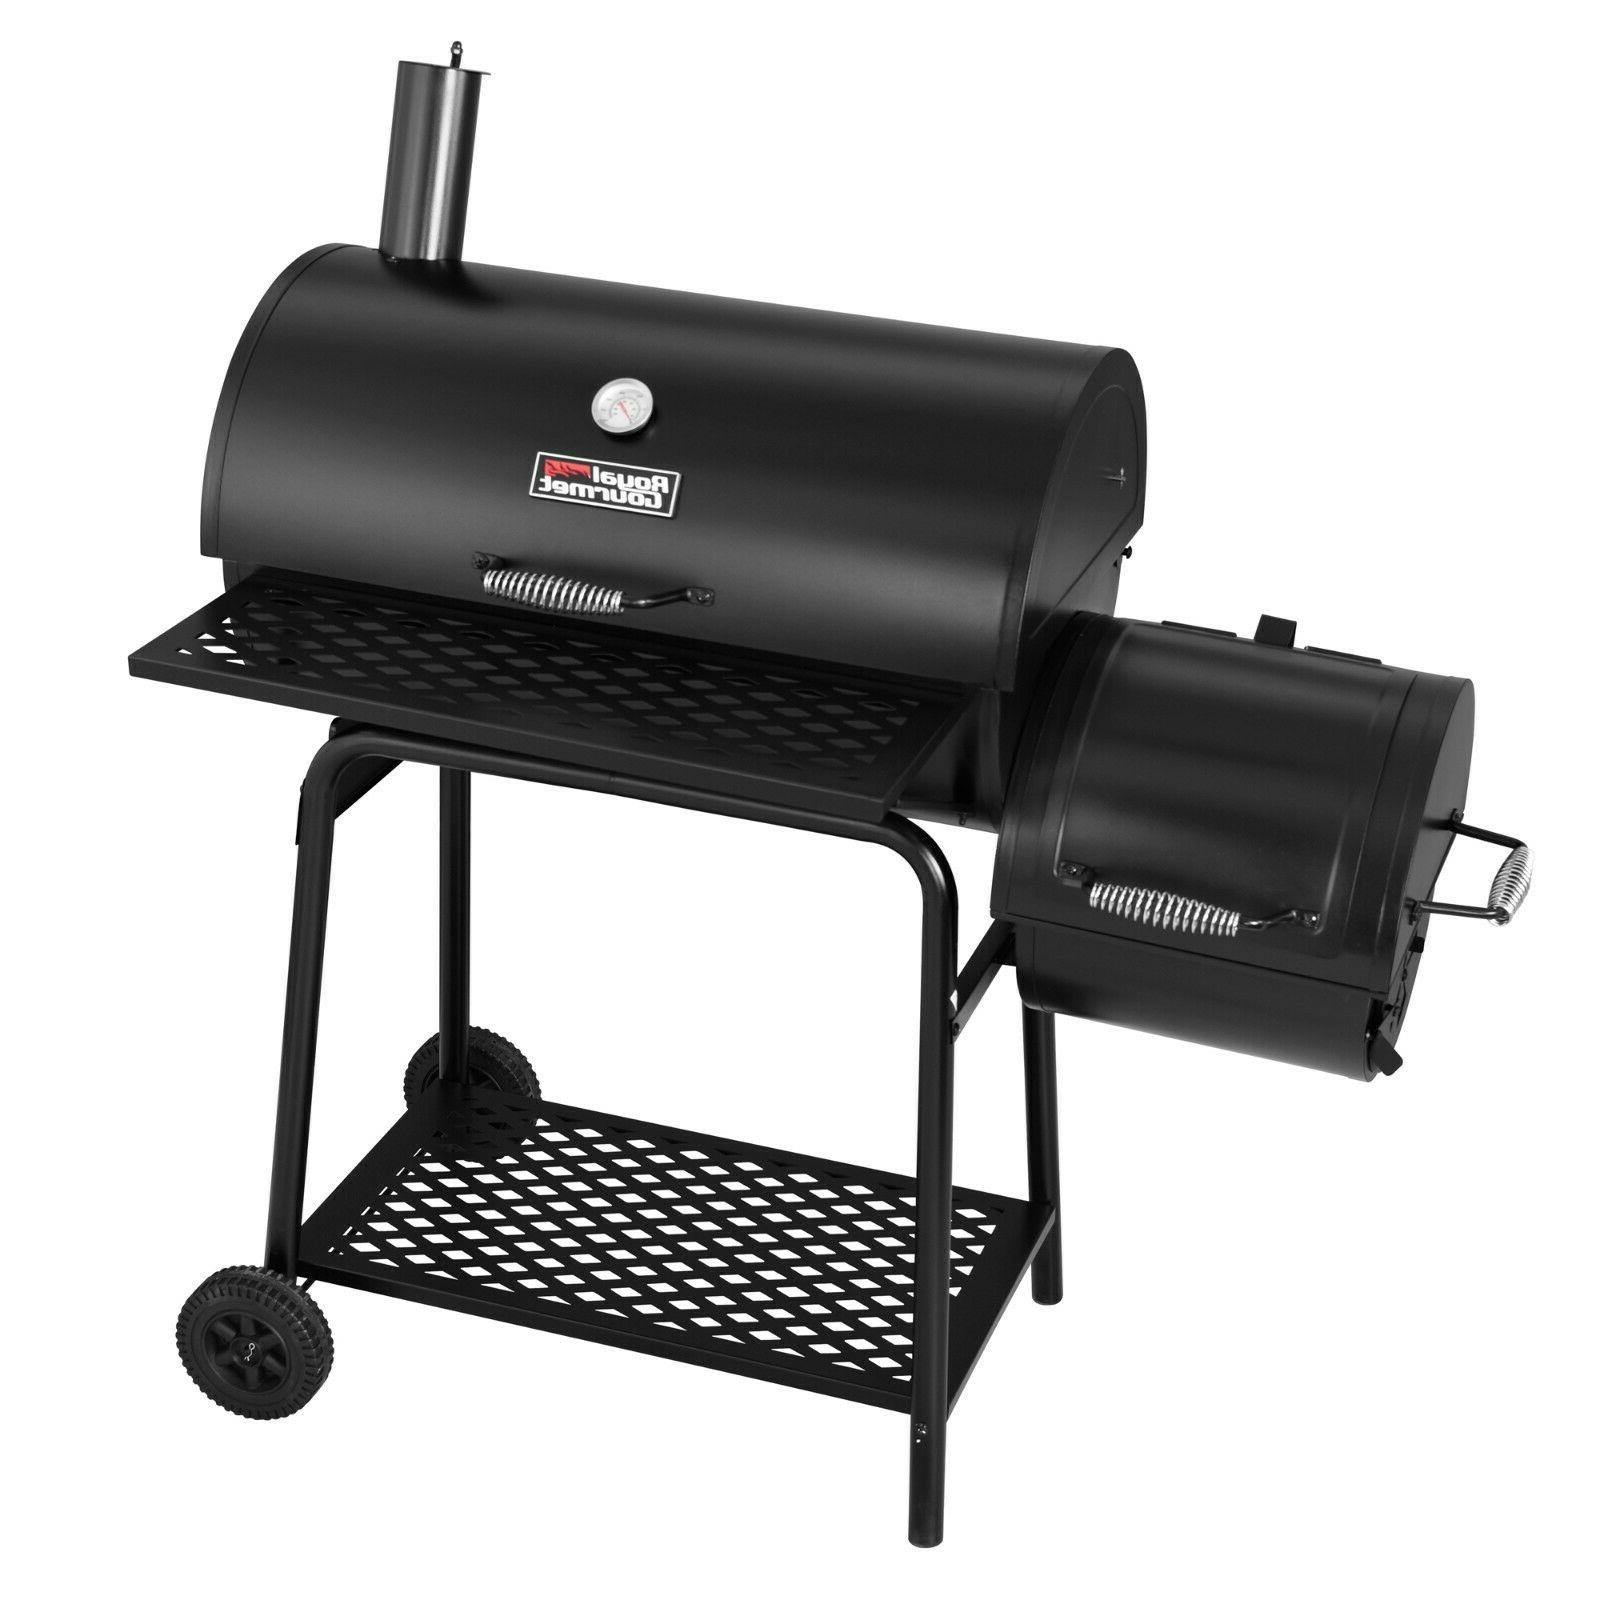 bbq barbecue smoker charcoal portable